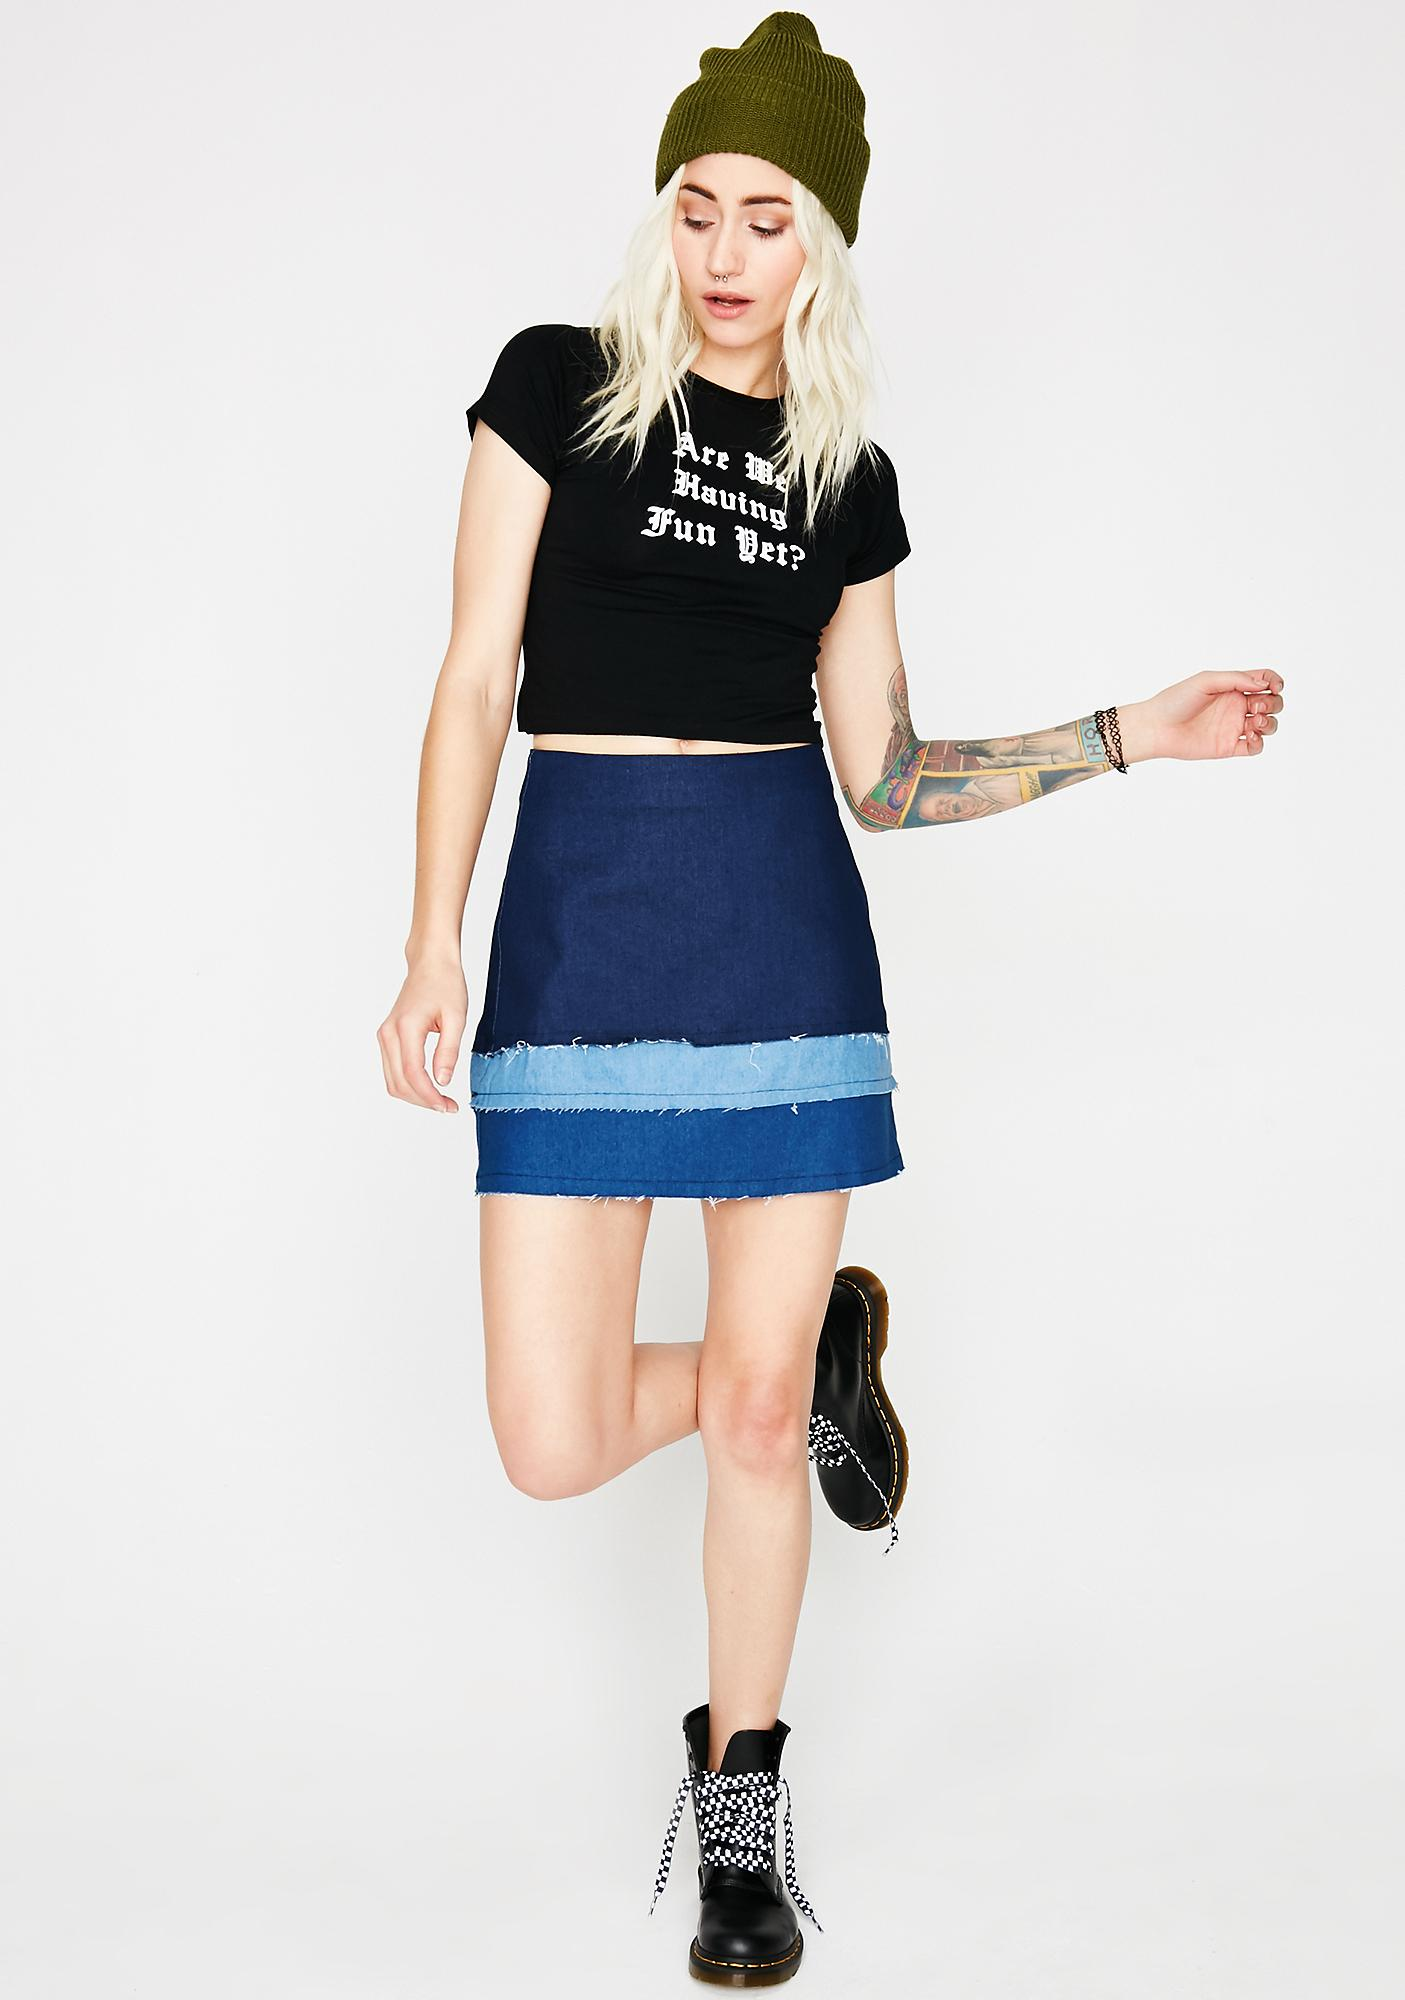 Fifty Shades Denim Skirt